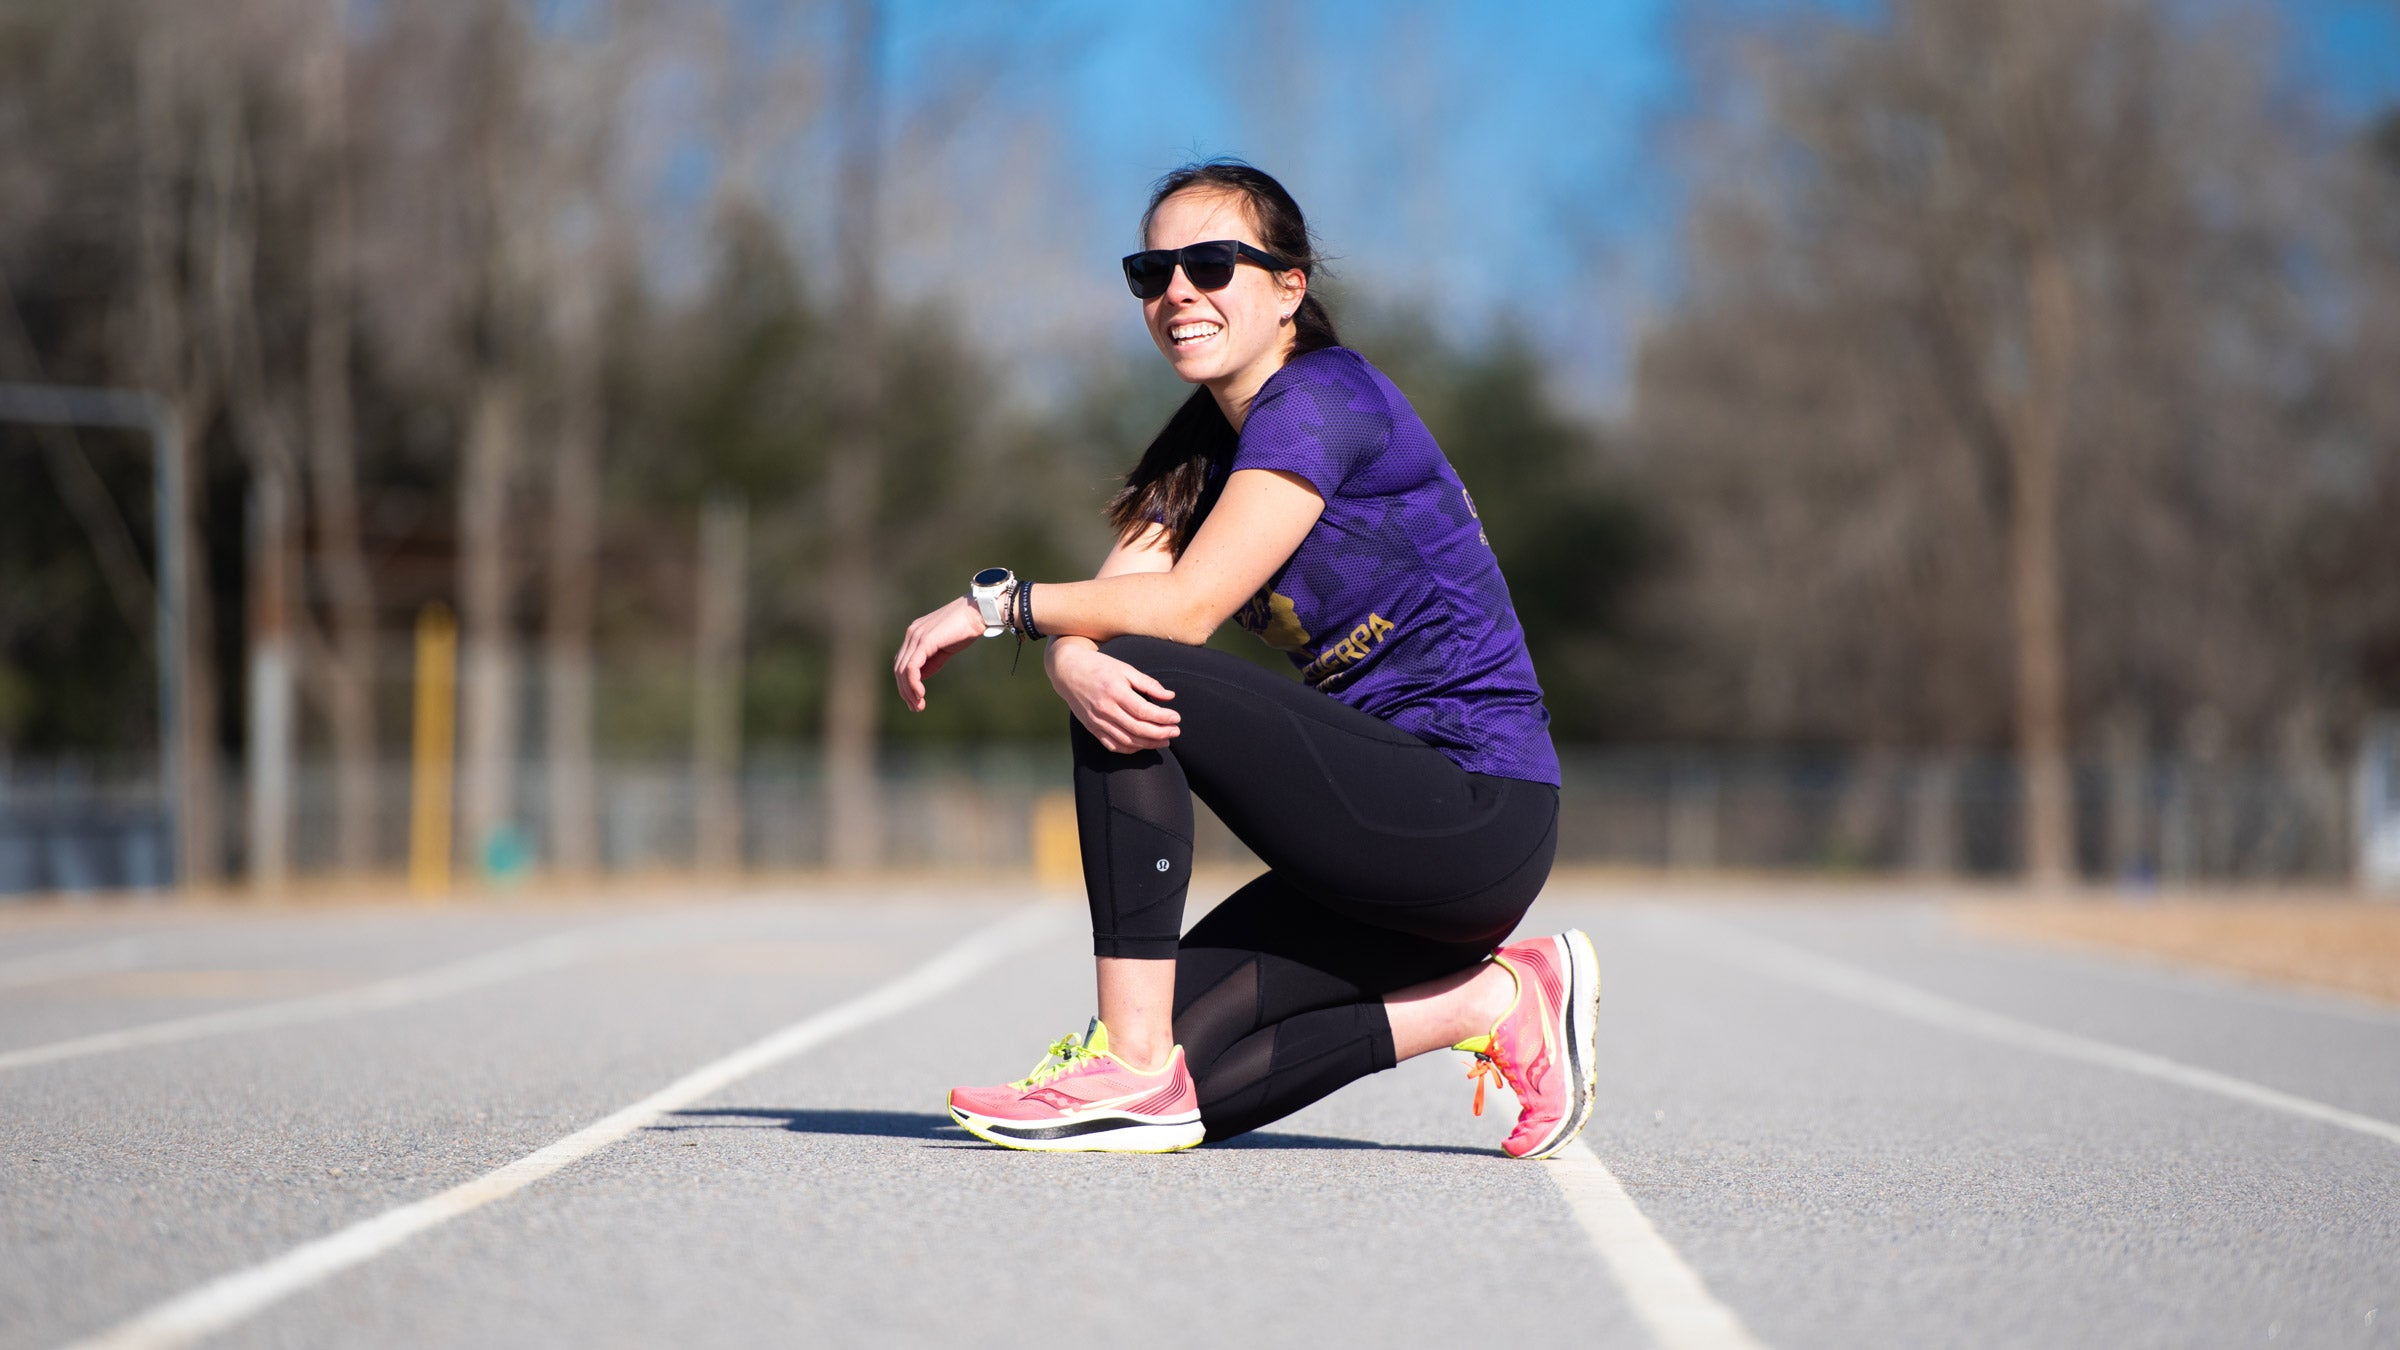 """www.triathlete.com: """"I Am Ready To Help Change the Face of the Sport"""""""